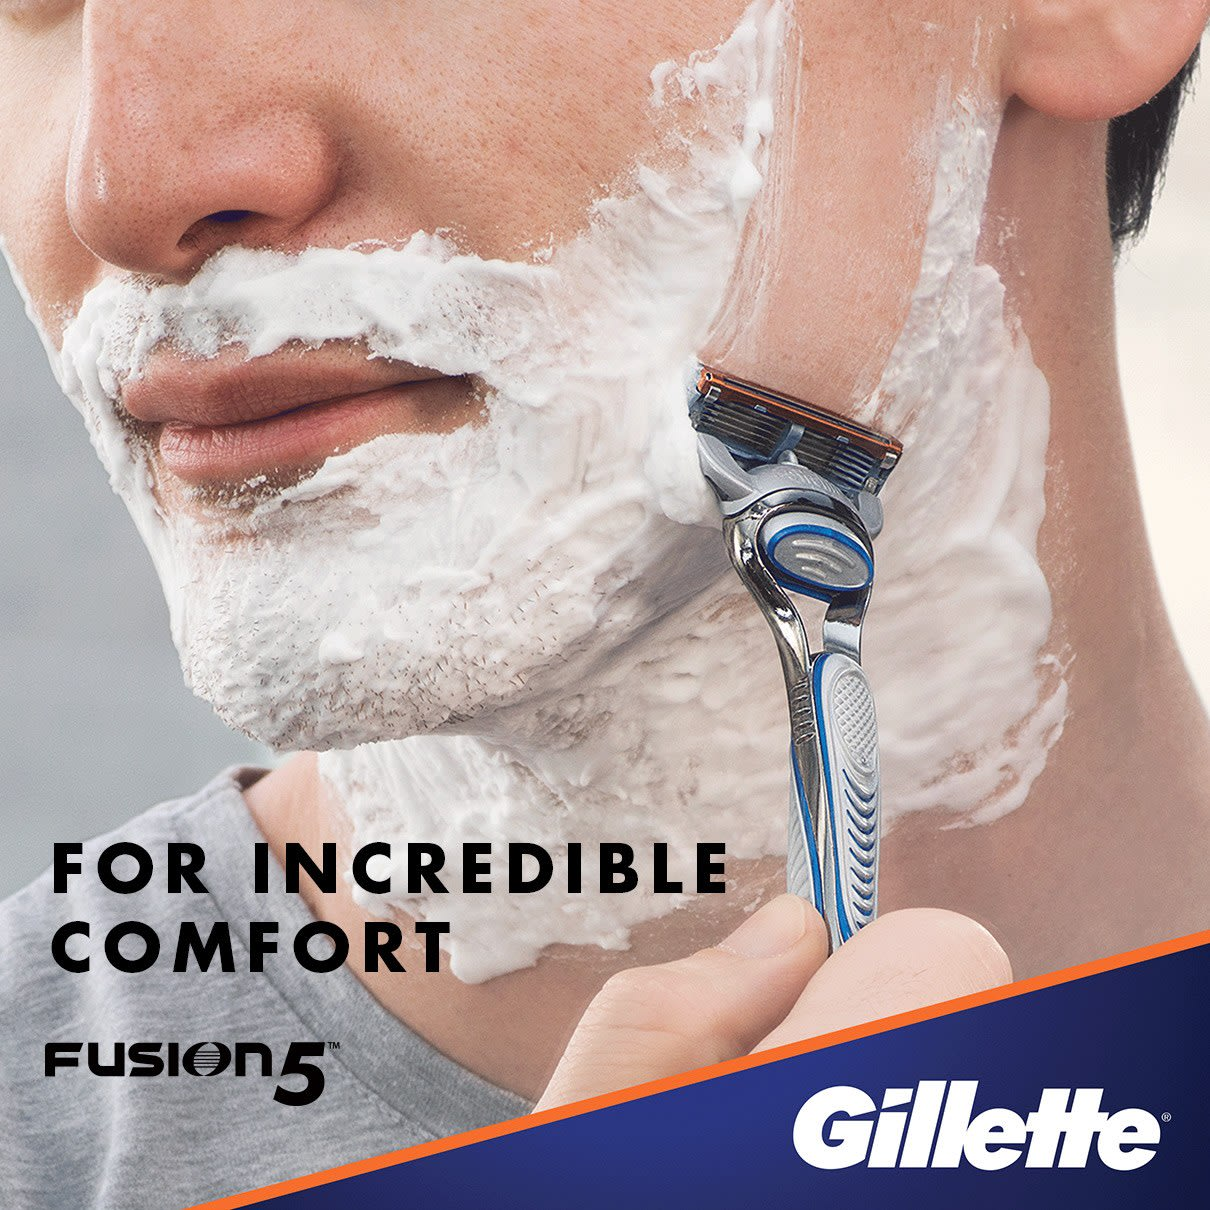 For incredible comfort